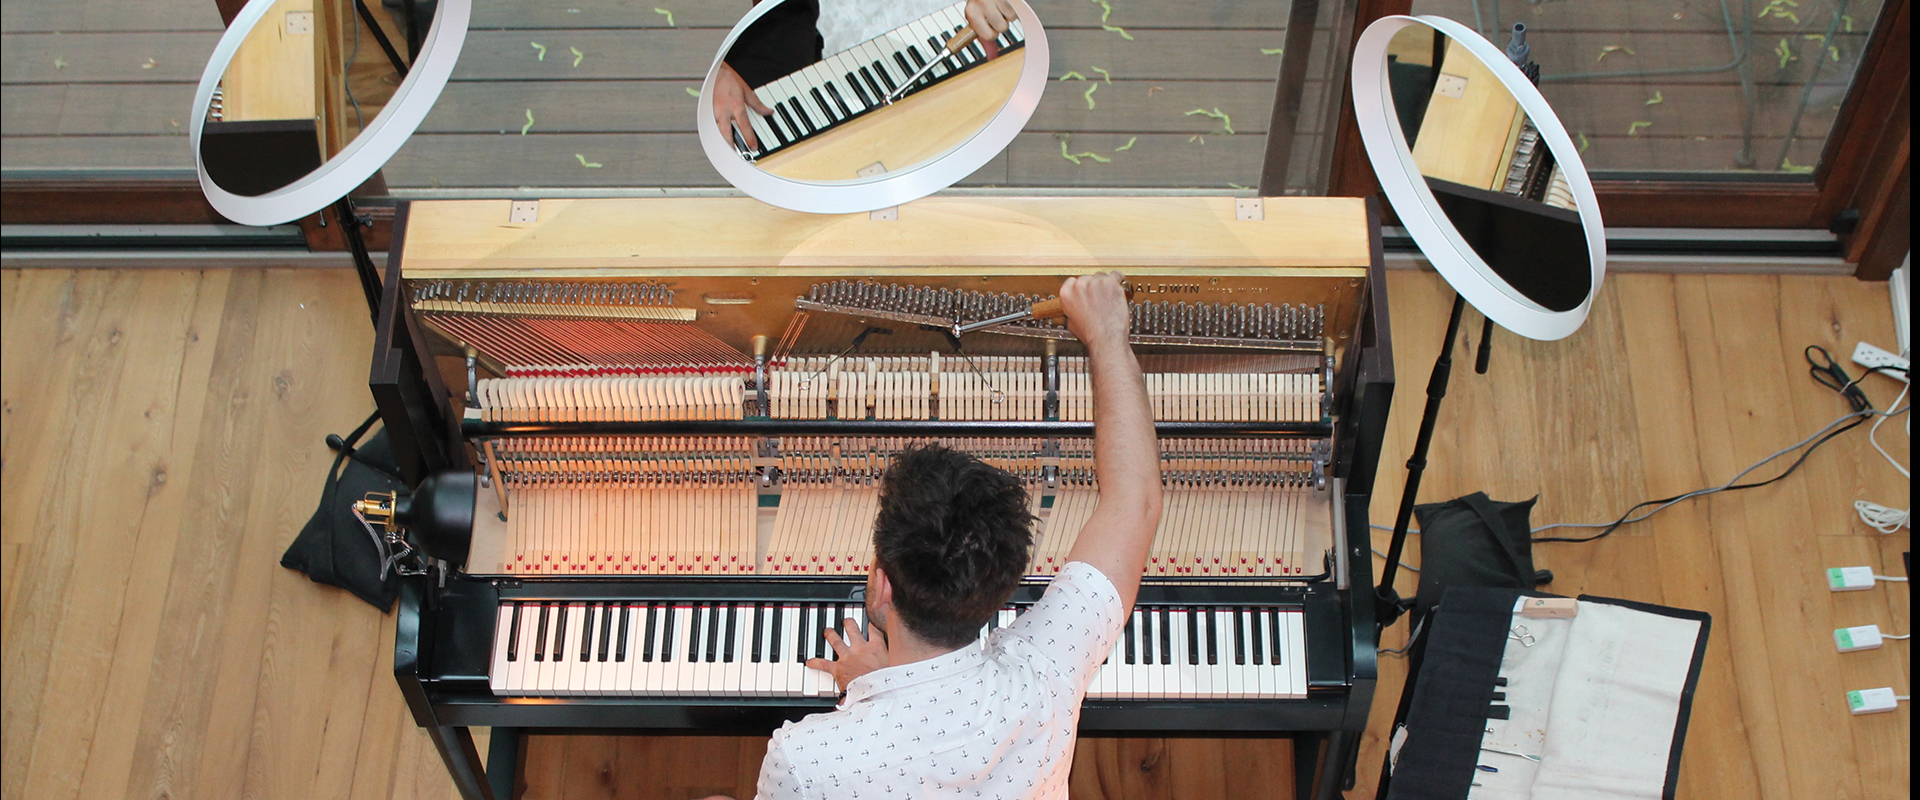 Stock photograph of someone tuning a piano